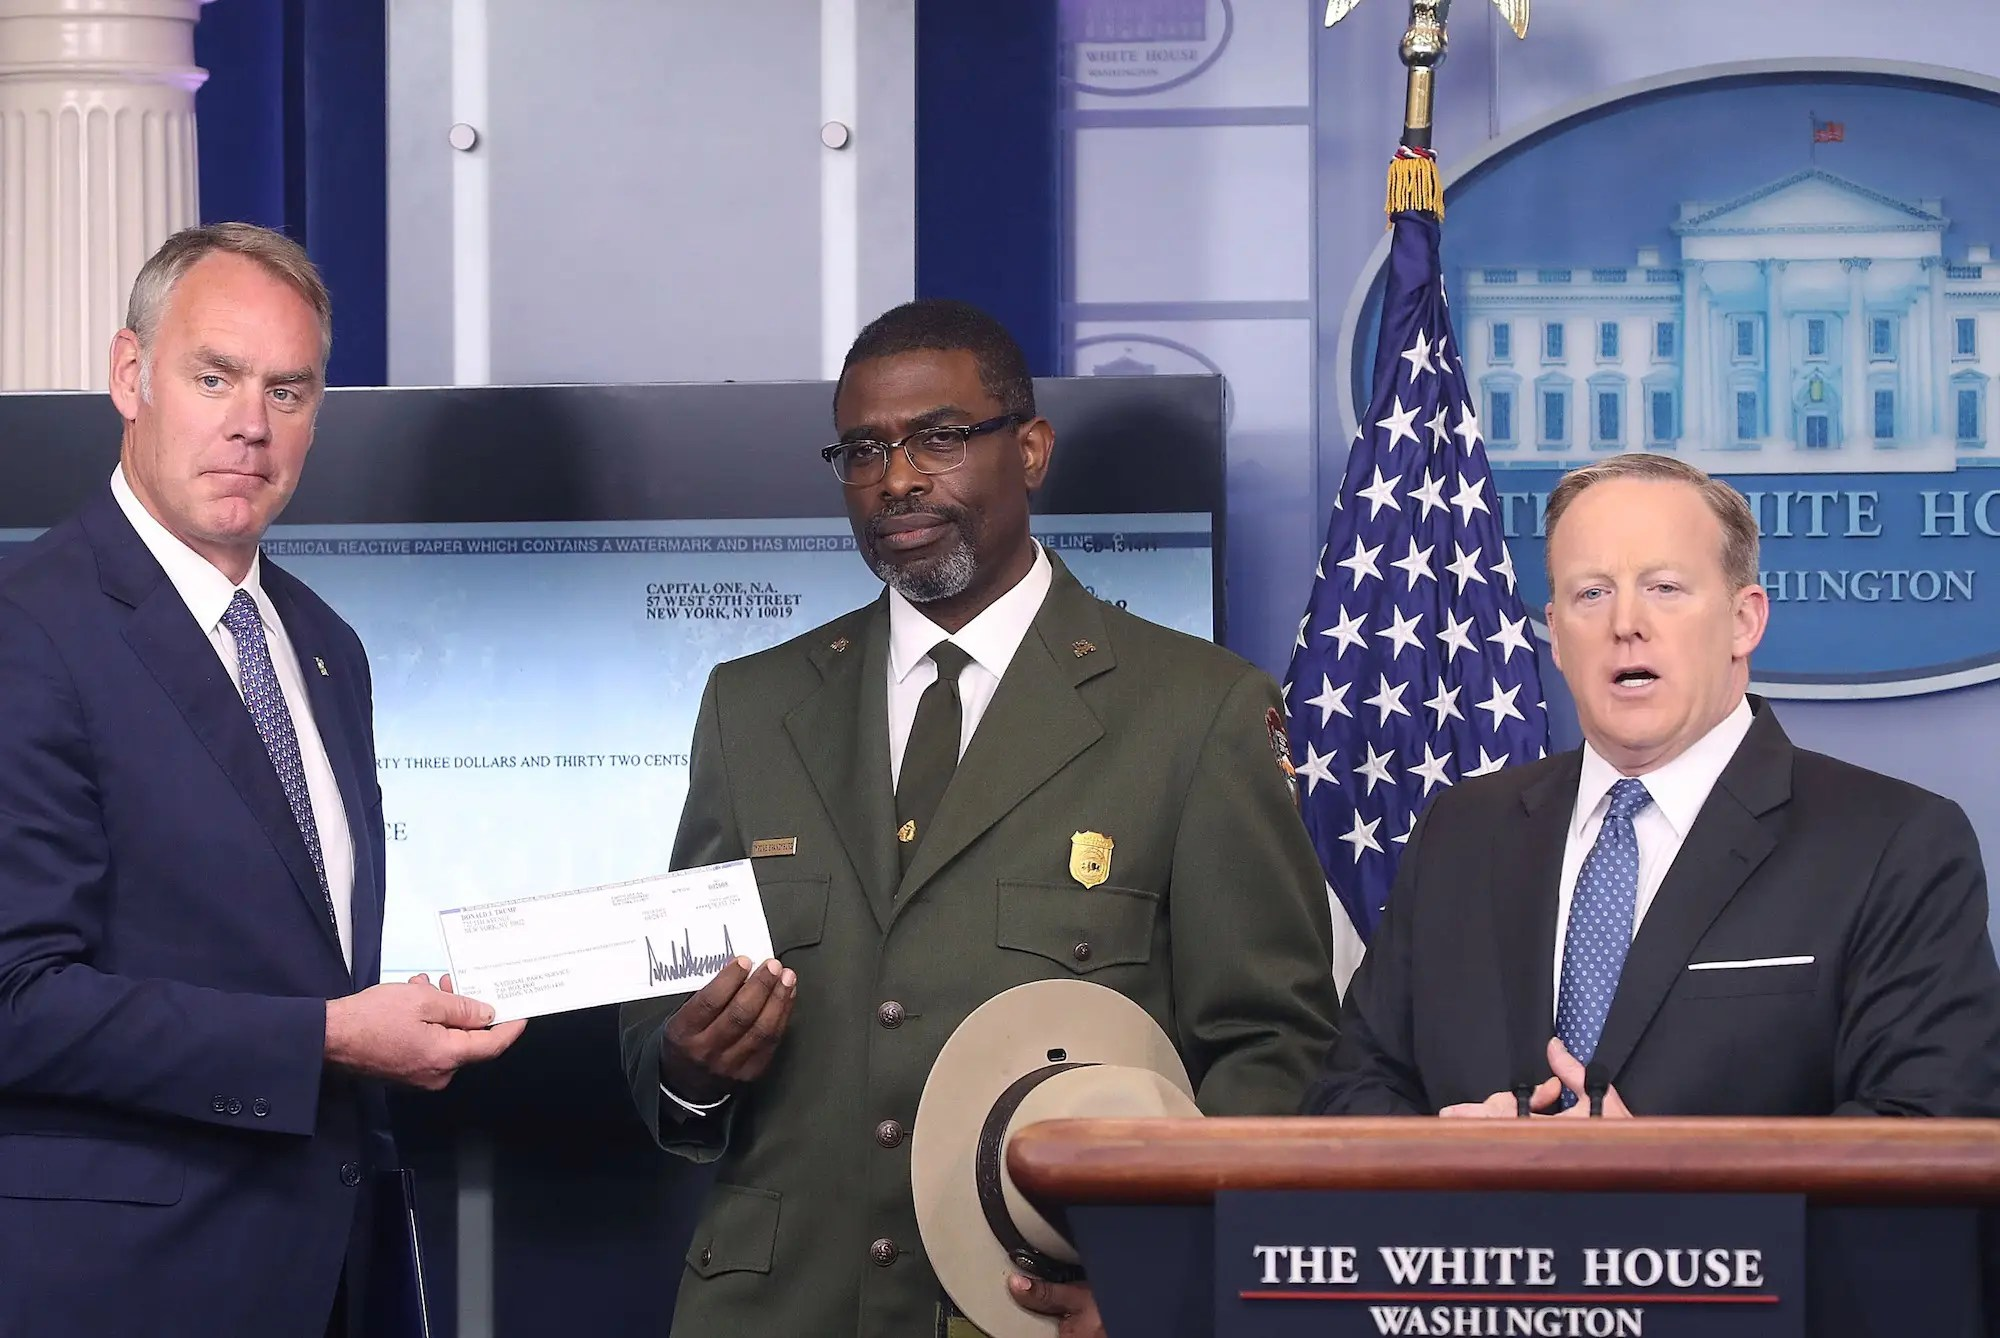 Presidential proclamation, April 14: National Park Week